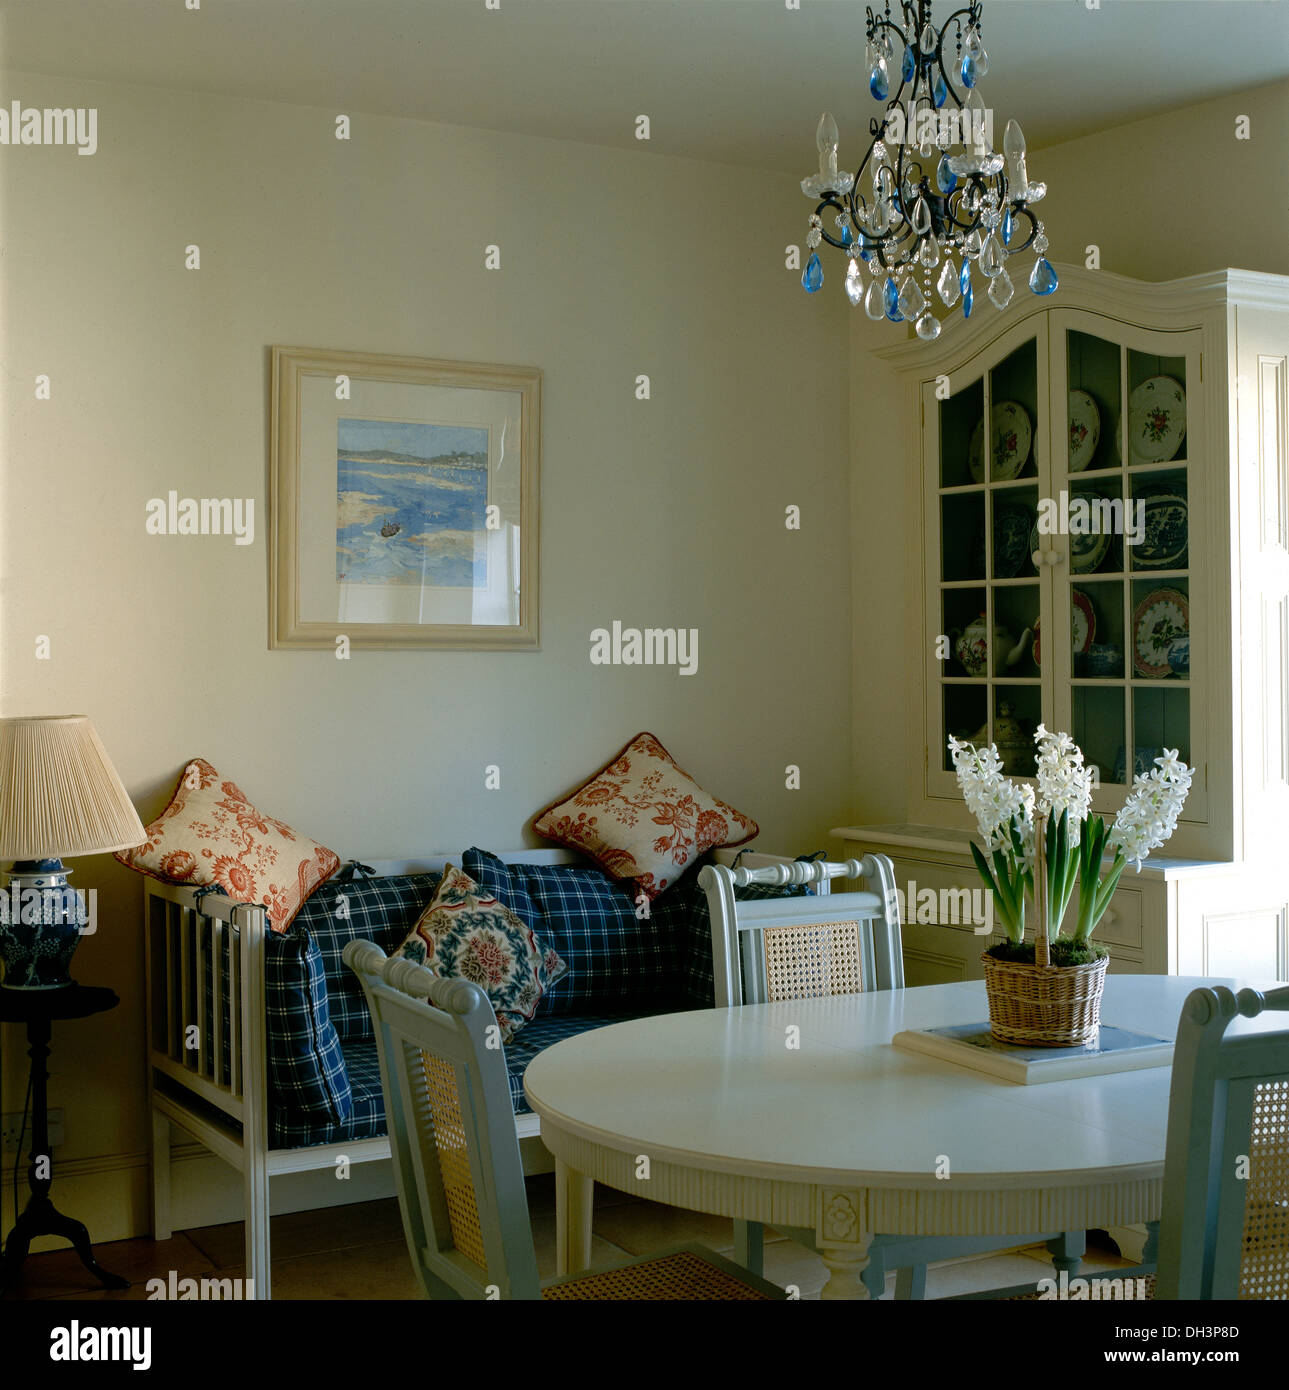 Outstanding Glass Chandelier Above Gray Chairs And Oval Table With Pot Dailytribune Chair Design For Home Dailytribuneorg